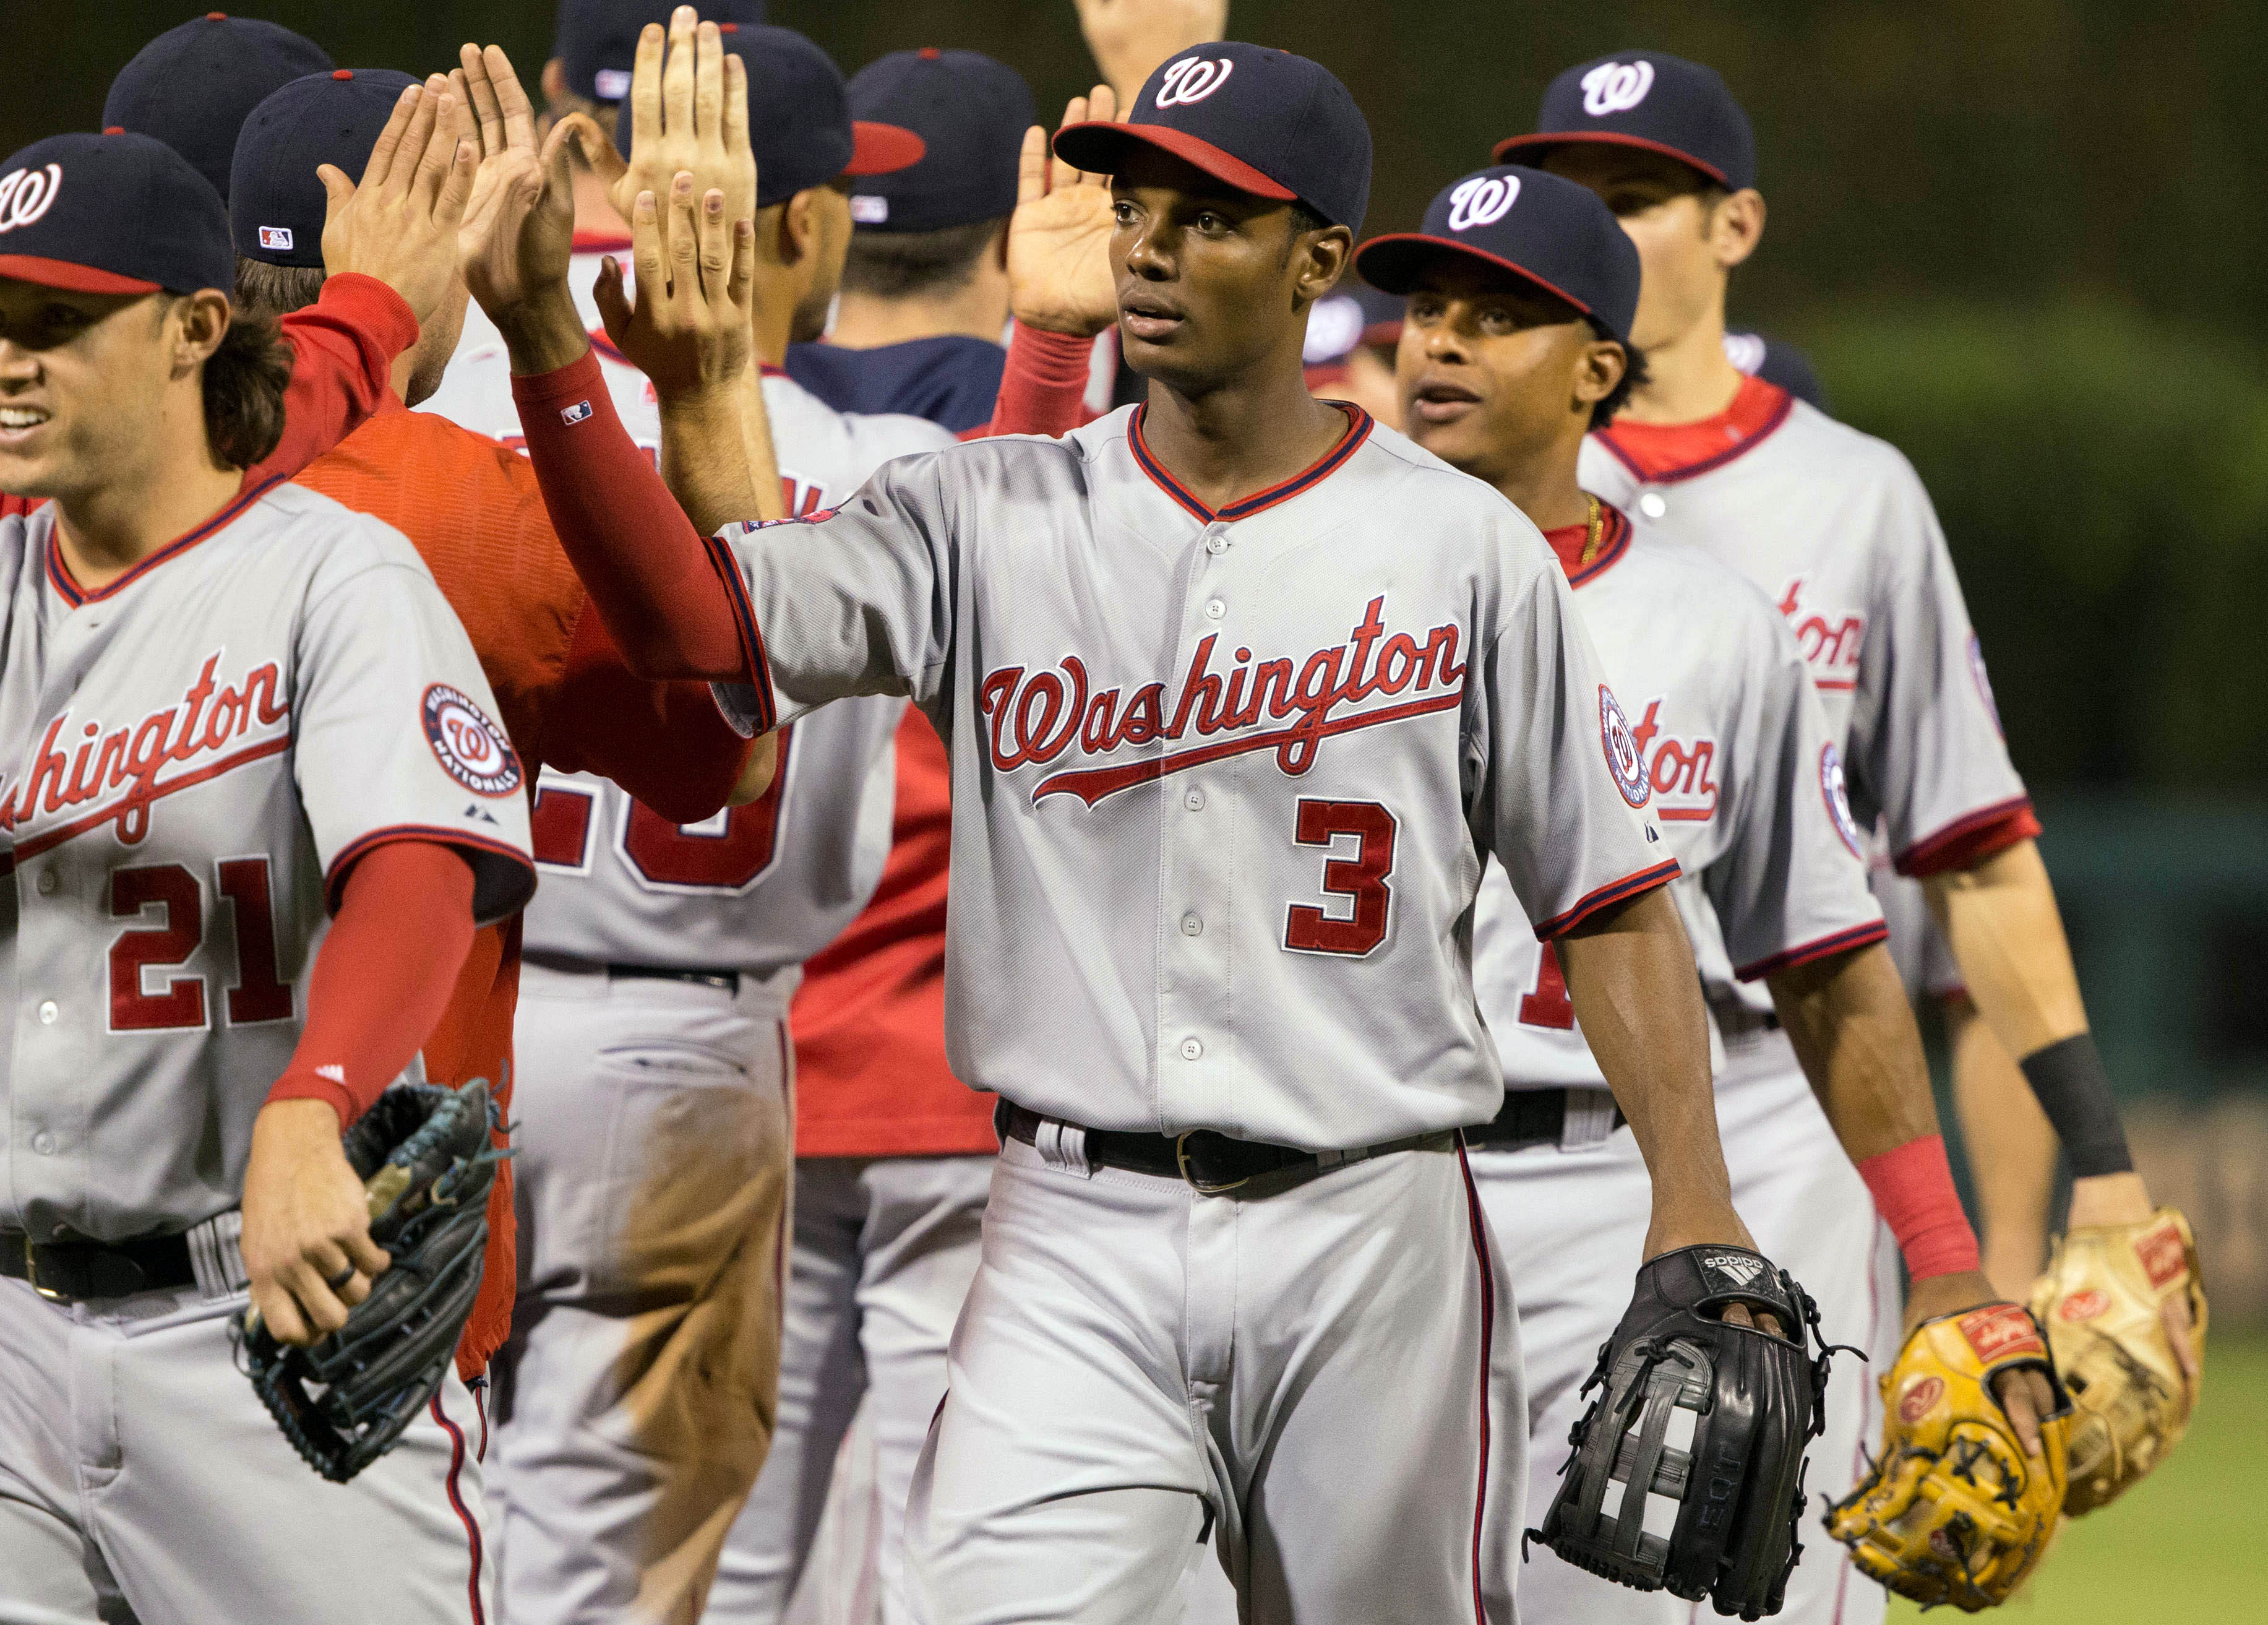 After gaining a couple of games the past two days, the Nats are 7.5 back with 17 to play. Is there any hope?